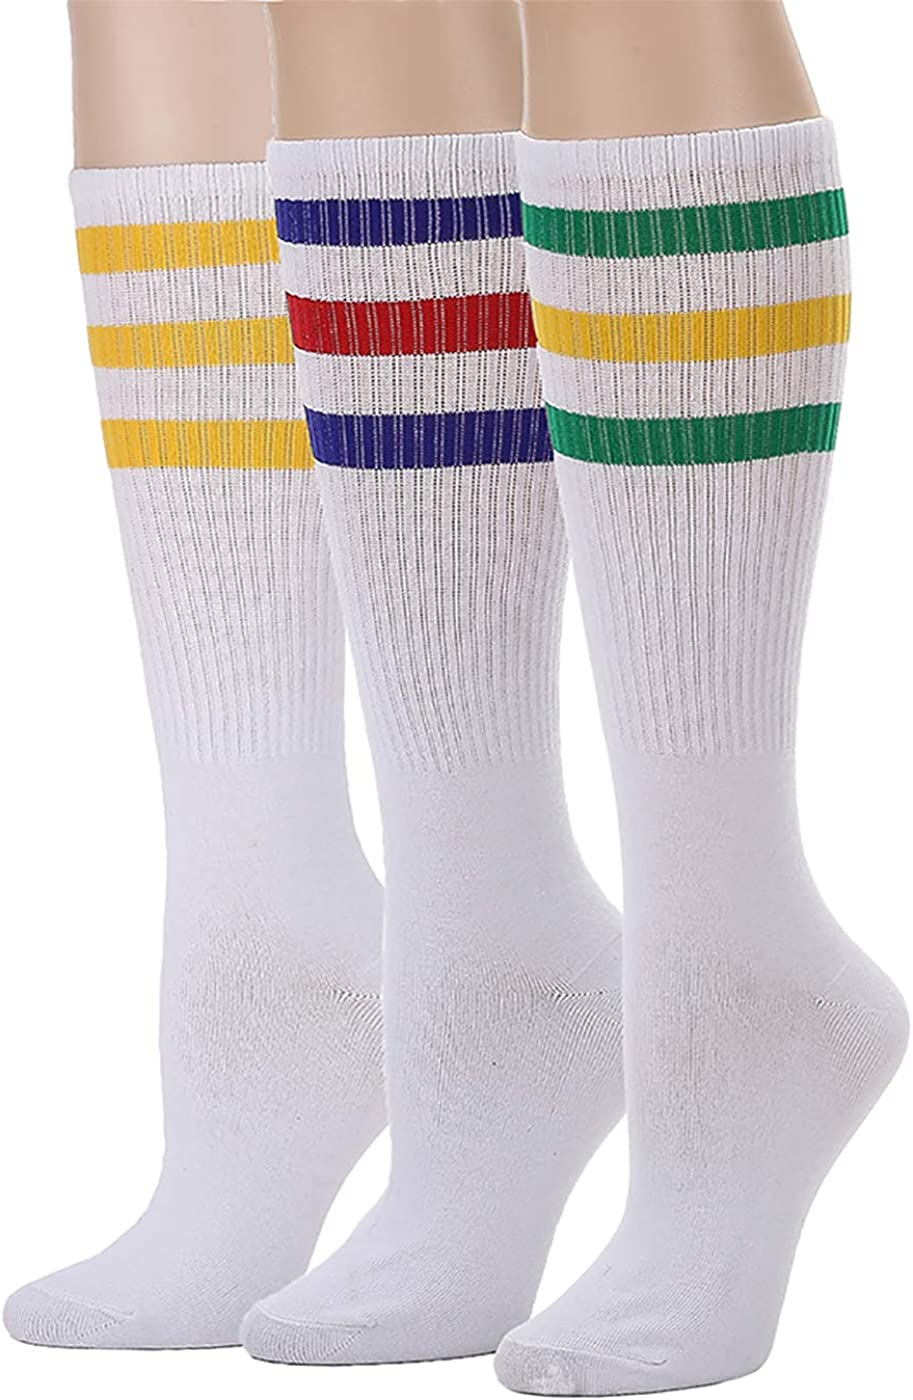 Leotruny 3 Pairs Over the Calf Tube Socks